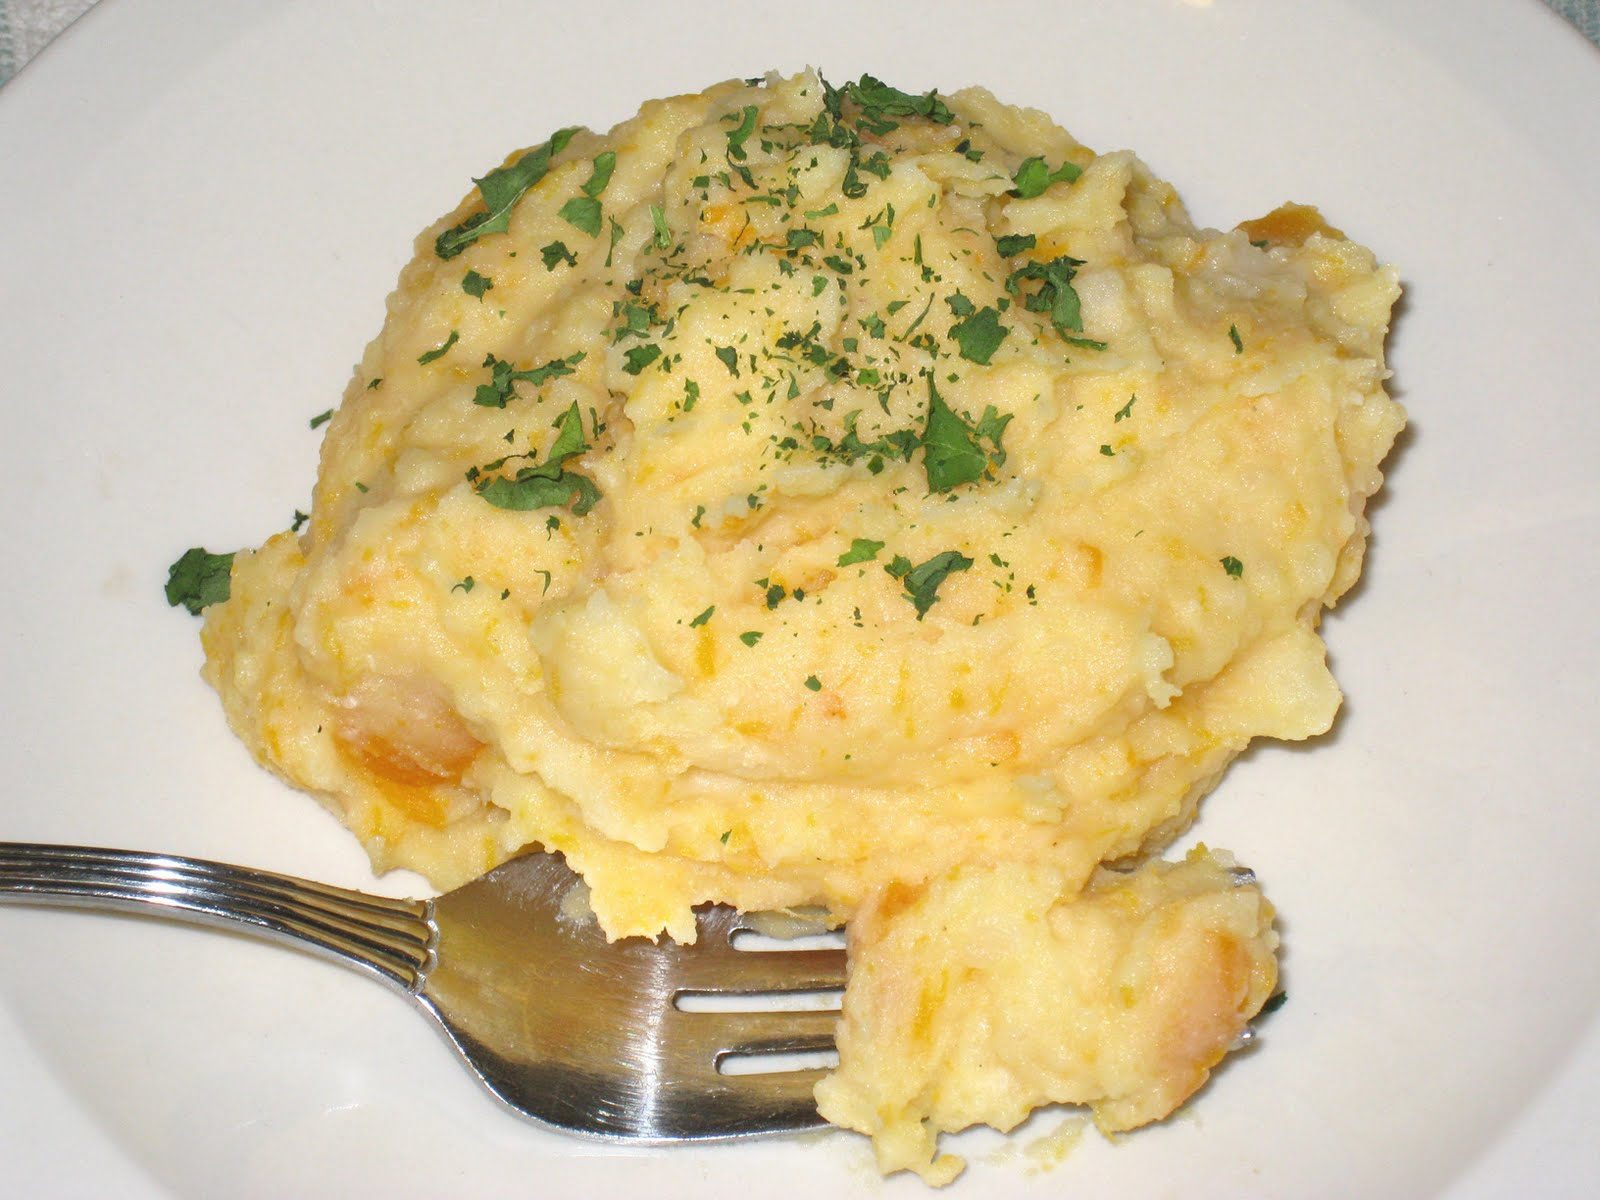 ... Net: Mashed Potatoes with Butternut Squash and Roasted Garlic